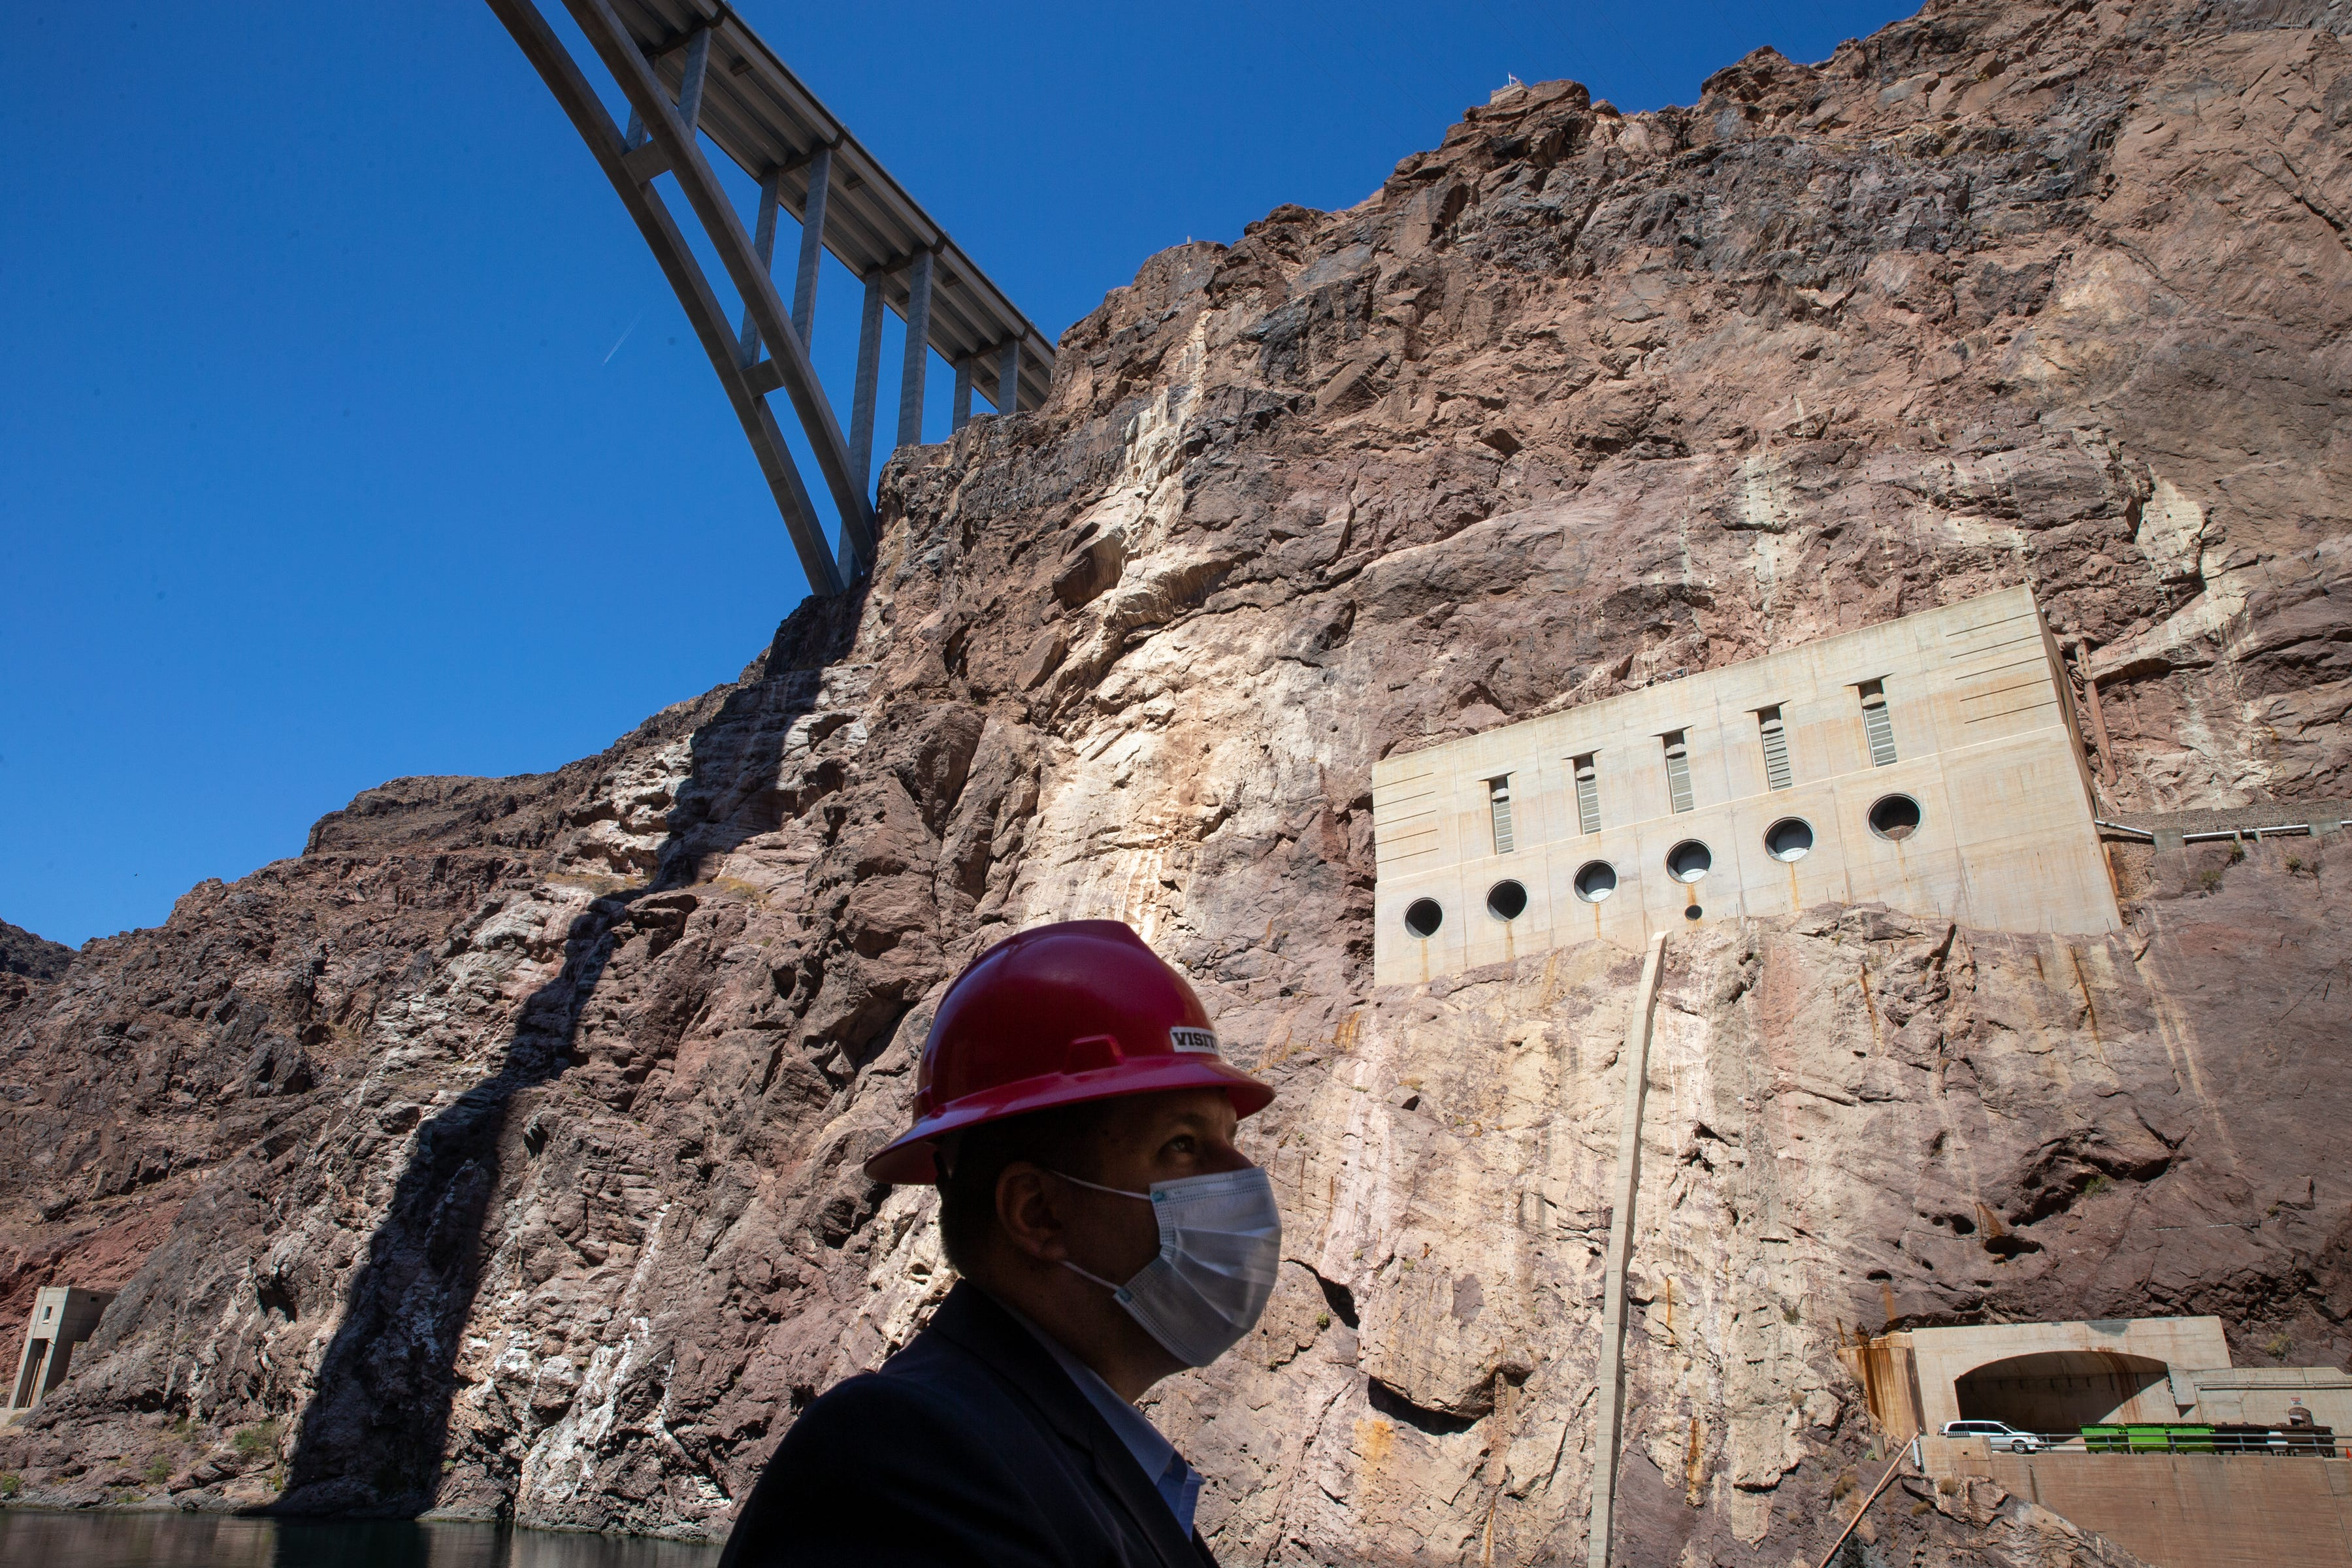 Mike Bernardo of the federal Bureau of Reclamation says that if the water level fell below the elevation of 950 feet, Hoover Dam would lose the ability to generate power.